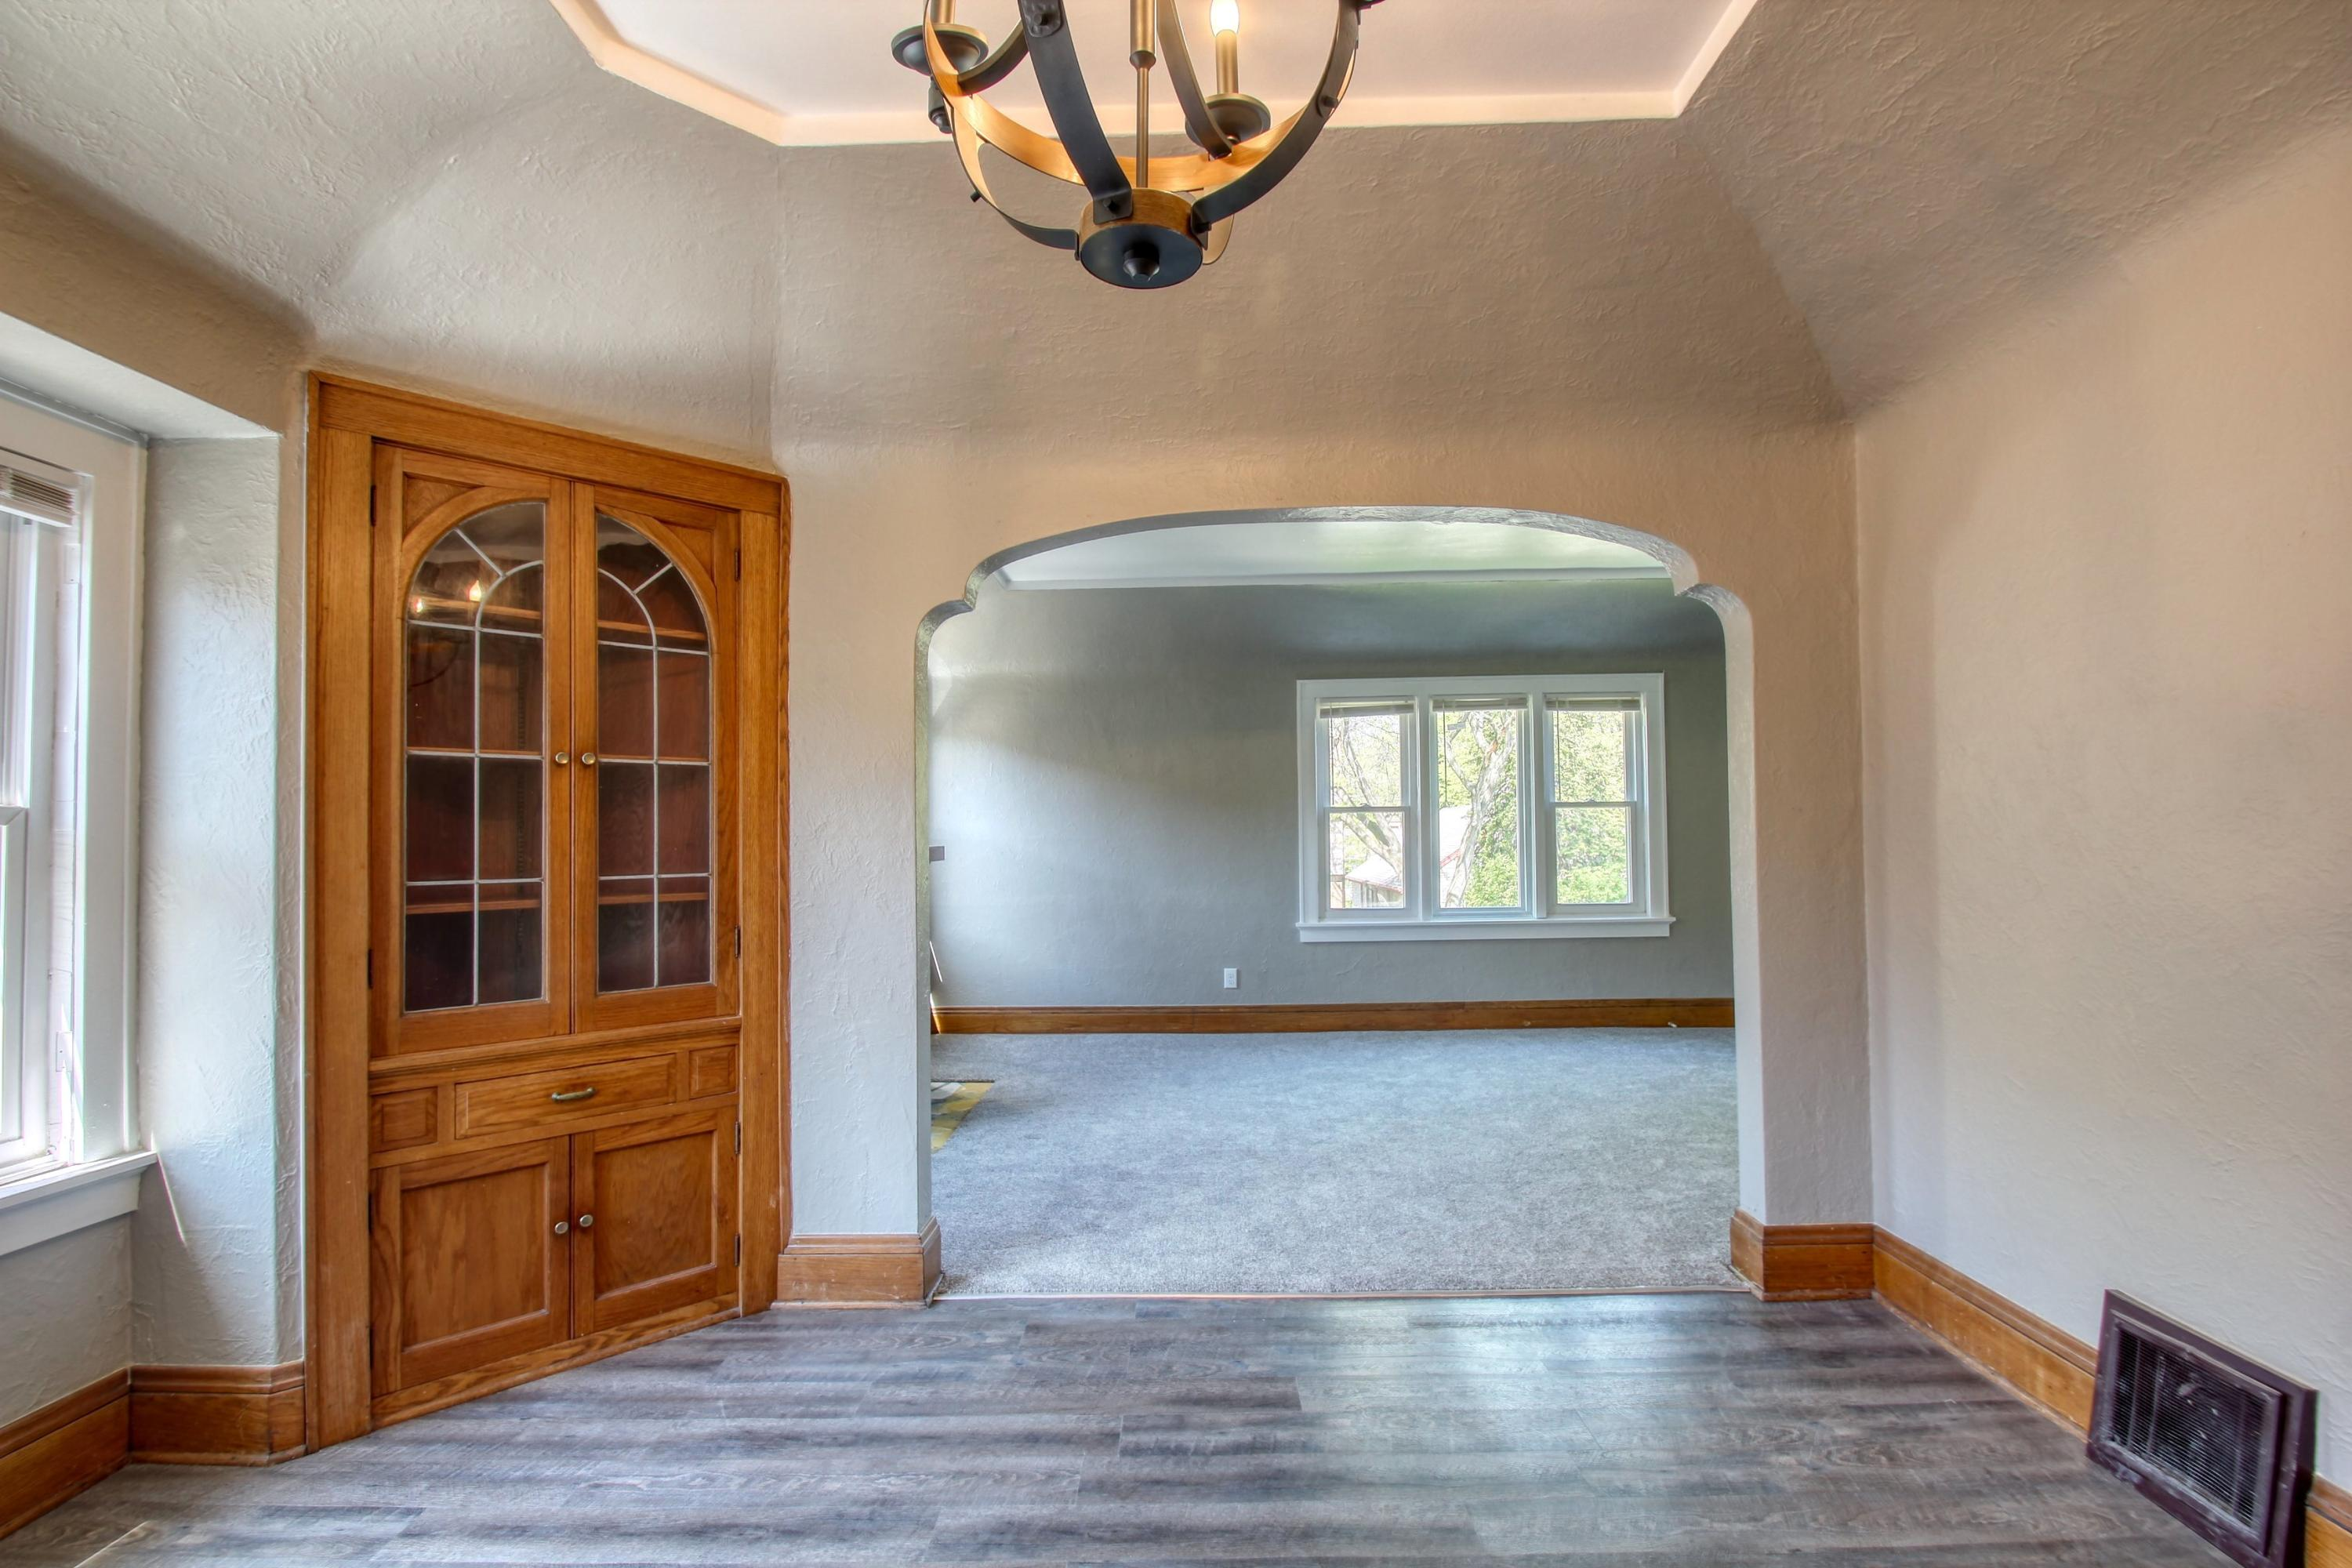 3378 47th St, Milwaukee, Wisconsin 53216, 2 Bedrooms Bedrooms, 5 Rooms Rooms,1 BathroomBathrooms,Two-Family,For Sale,47th St,1,1691388